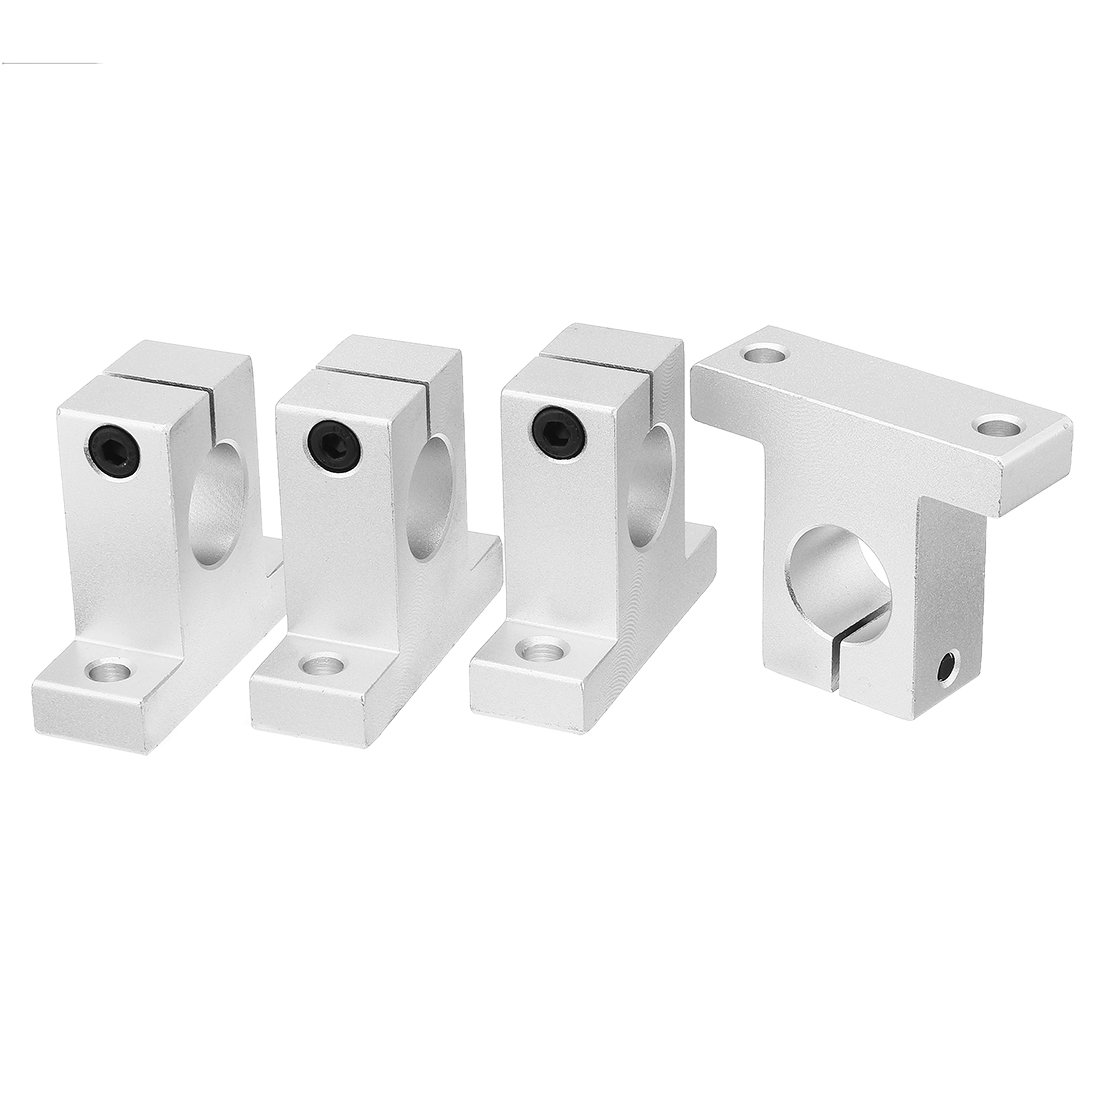 uxcell 4pcs SK12 Aluminum Linear Motion Rail Clamping Guide Support for 12mm Dia Shaft